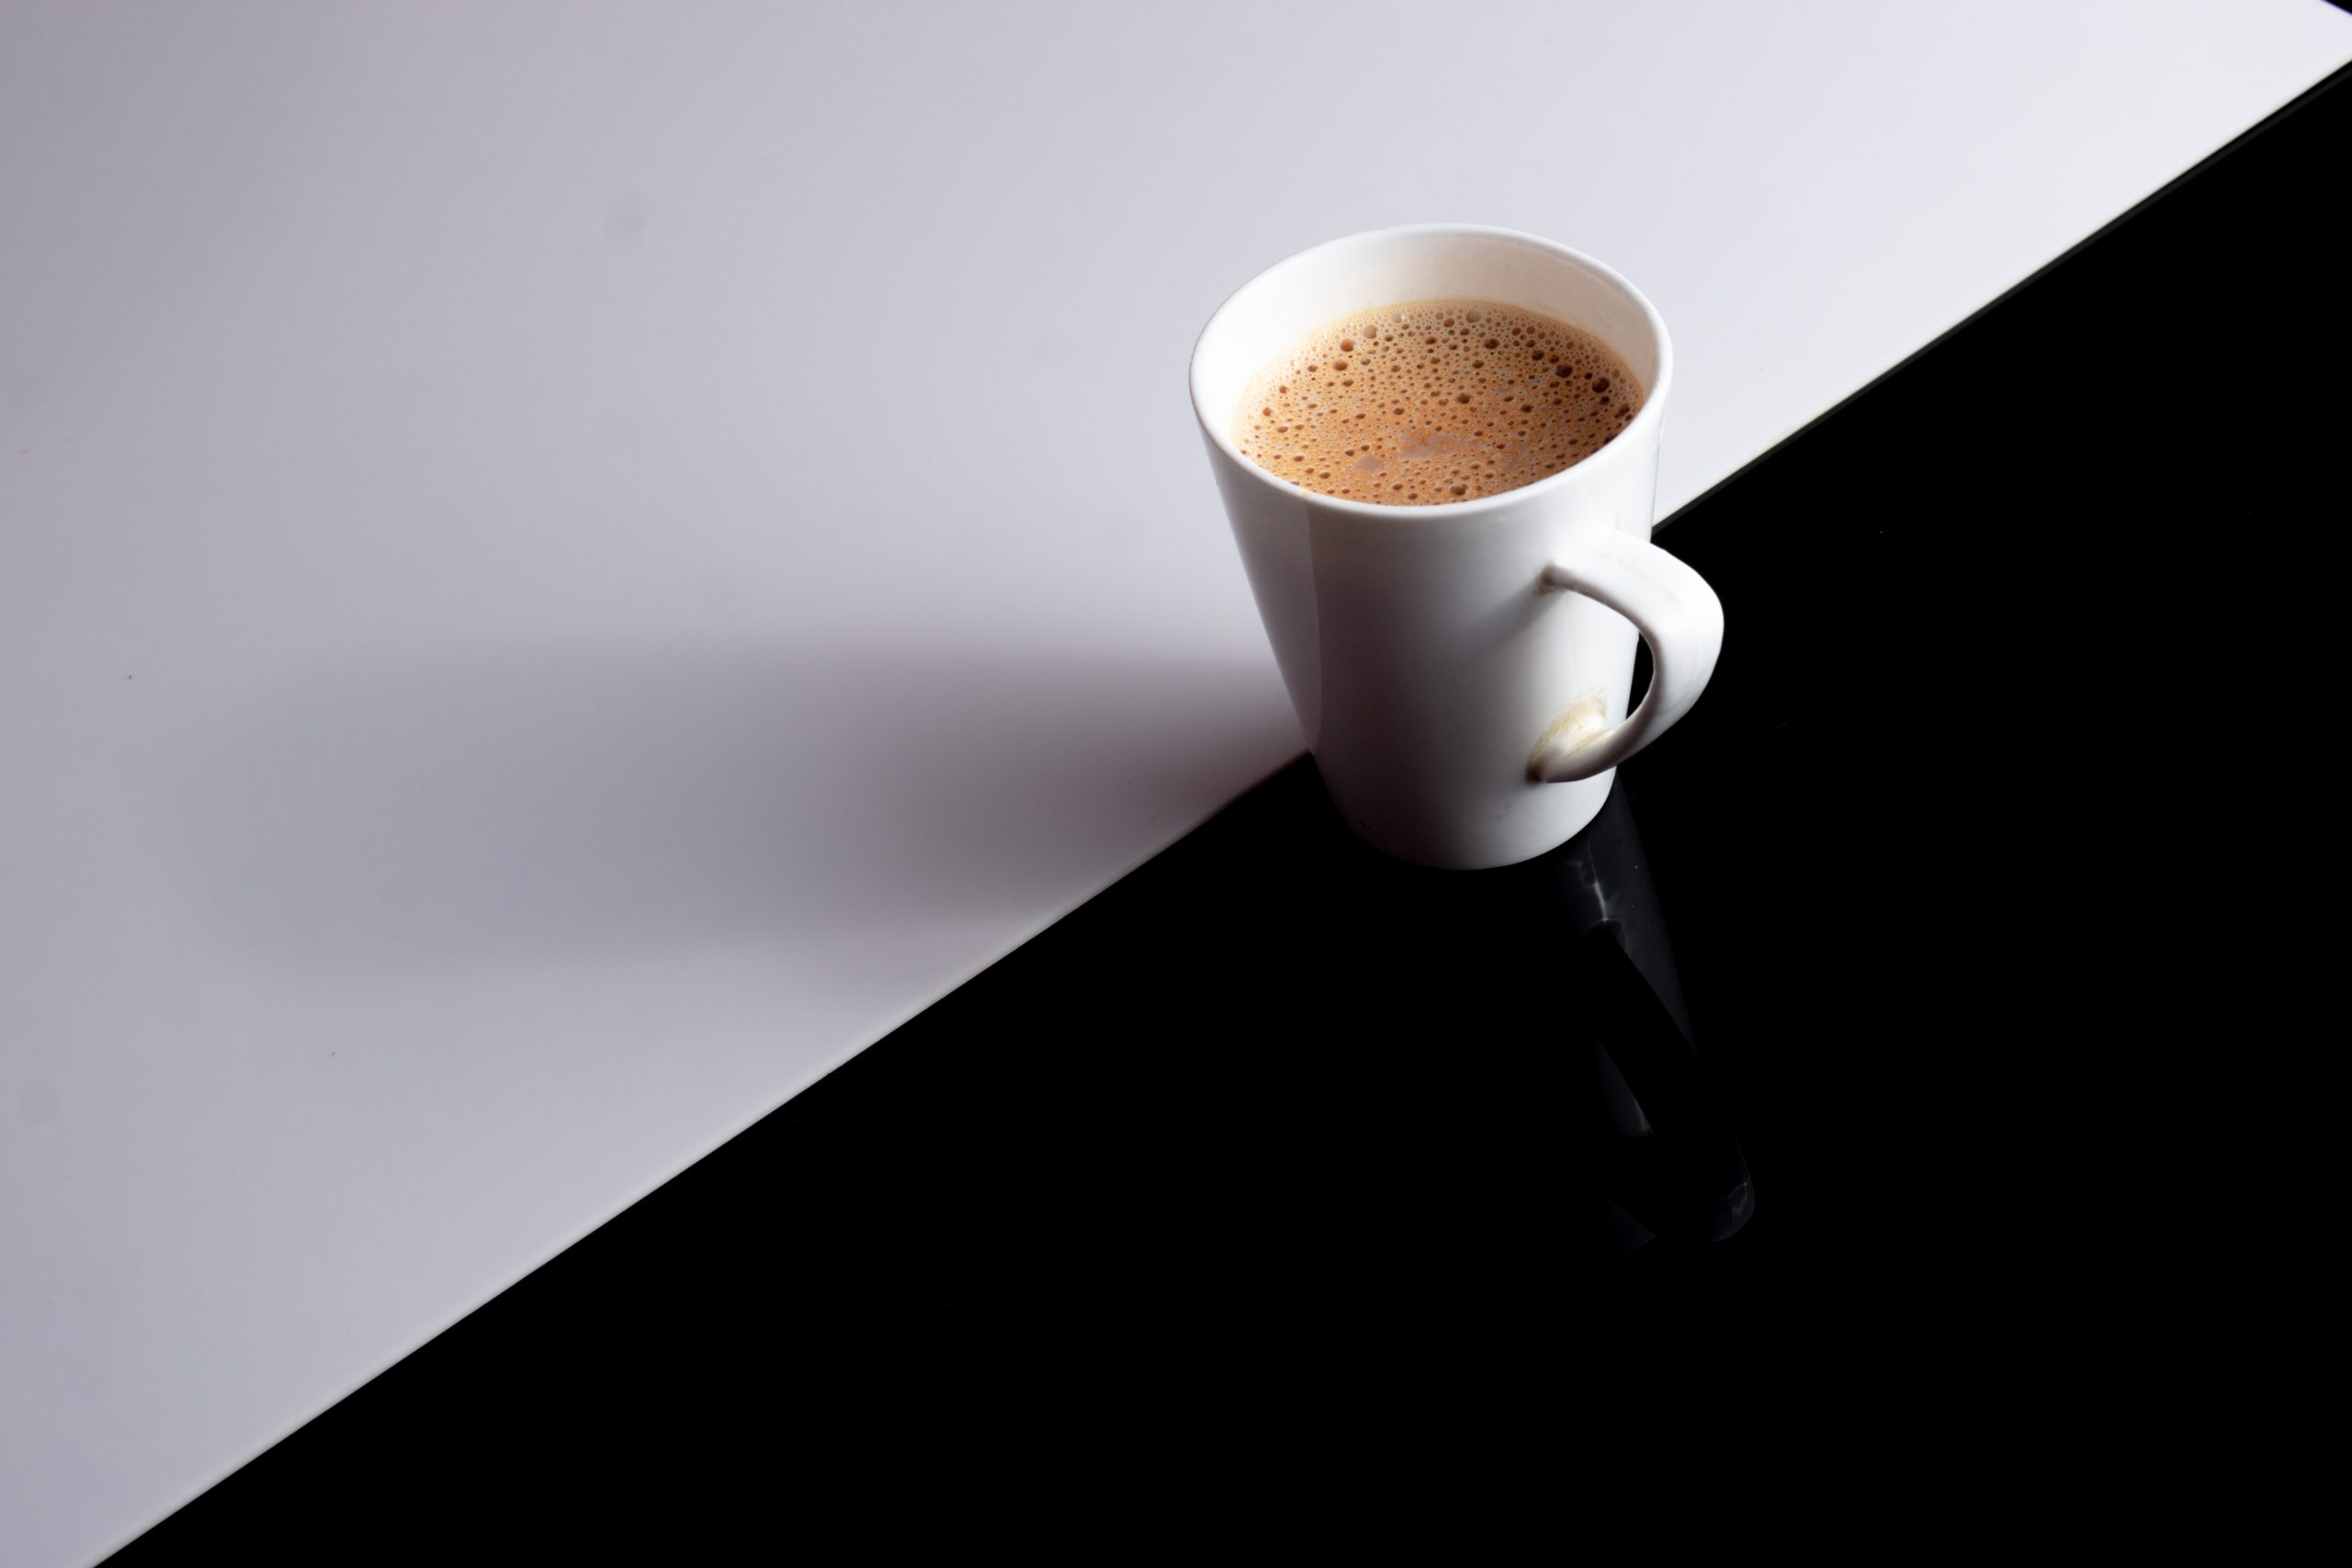 Cup of tea with black & white background